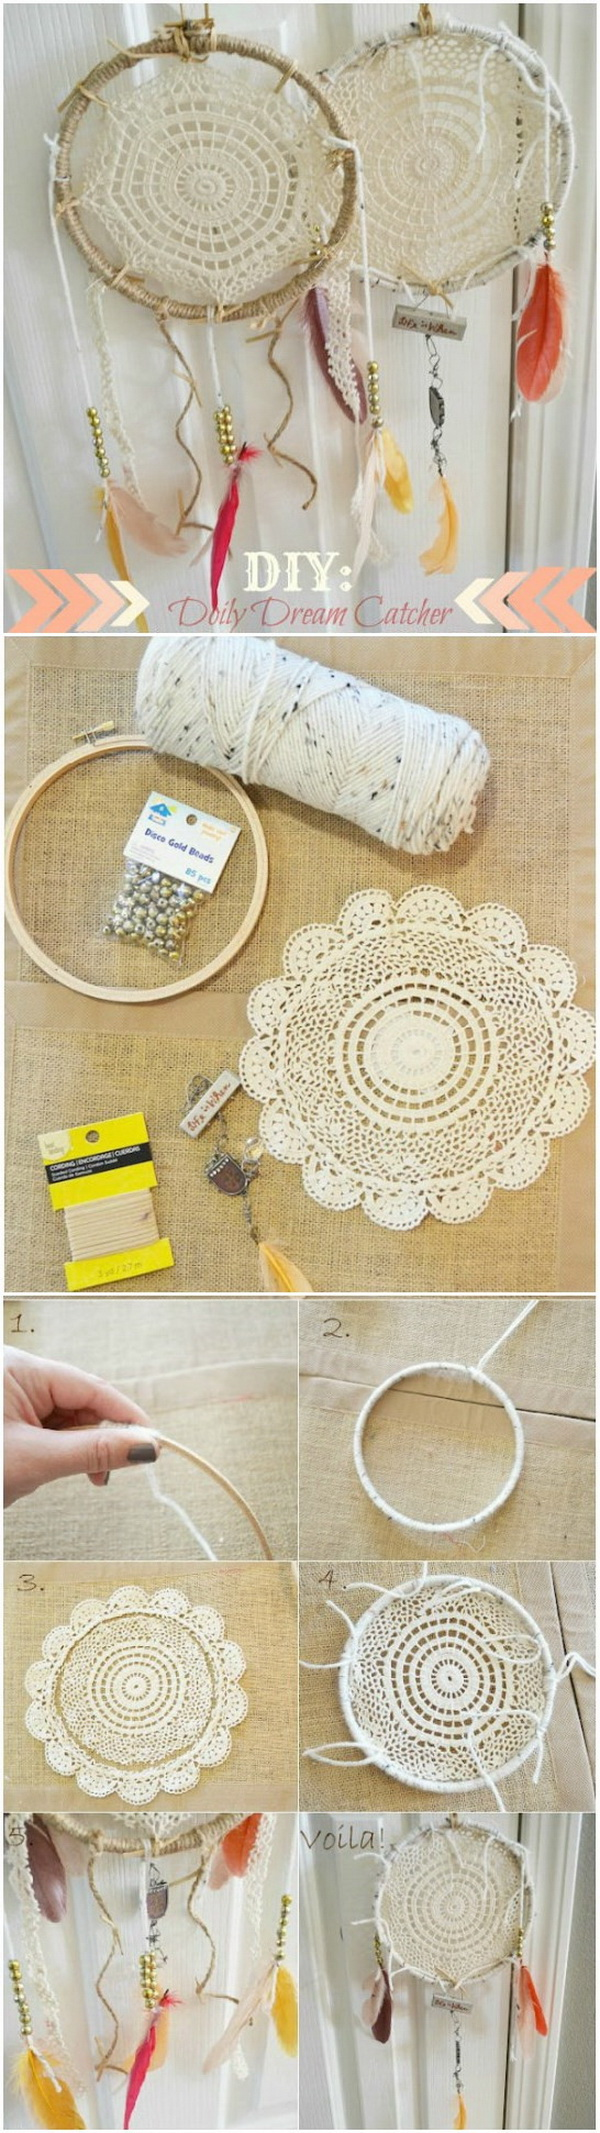 DIY Doily Dream Catcher.